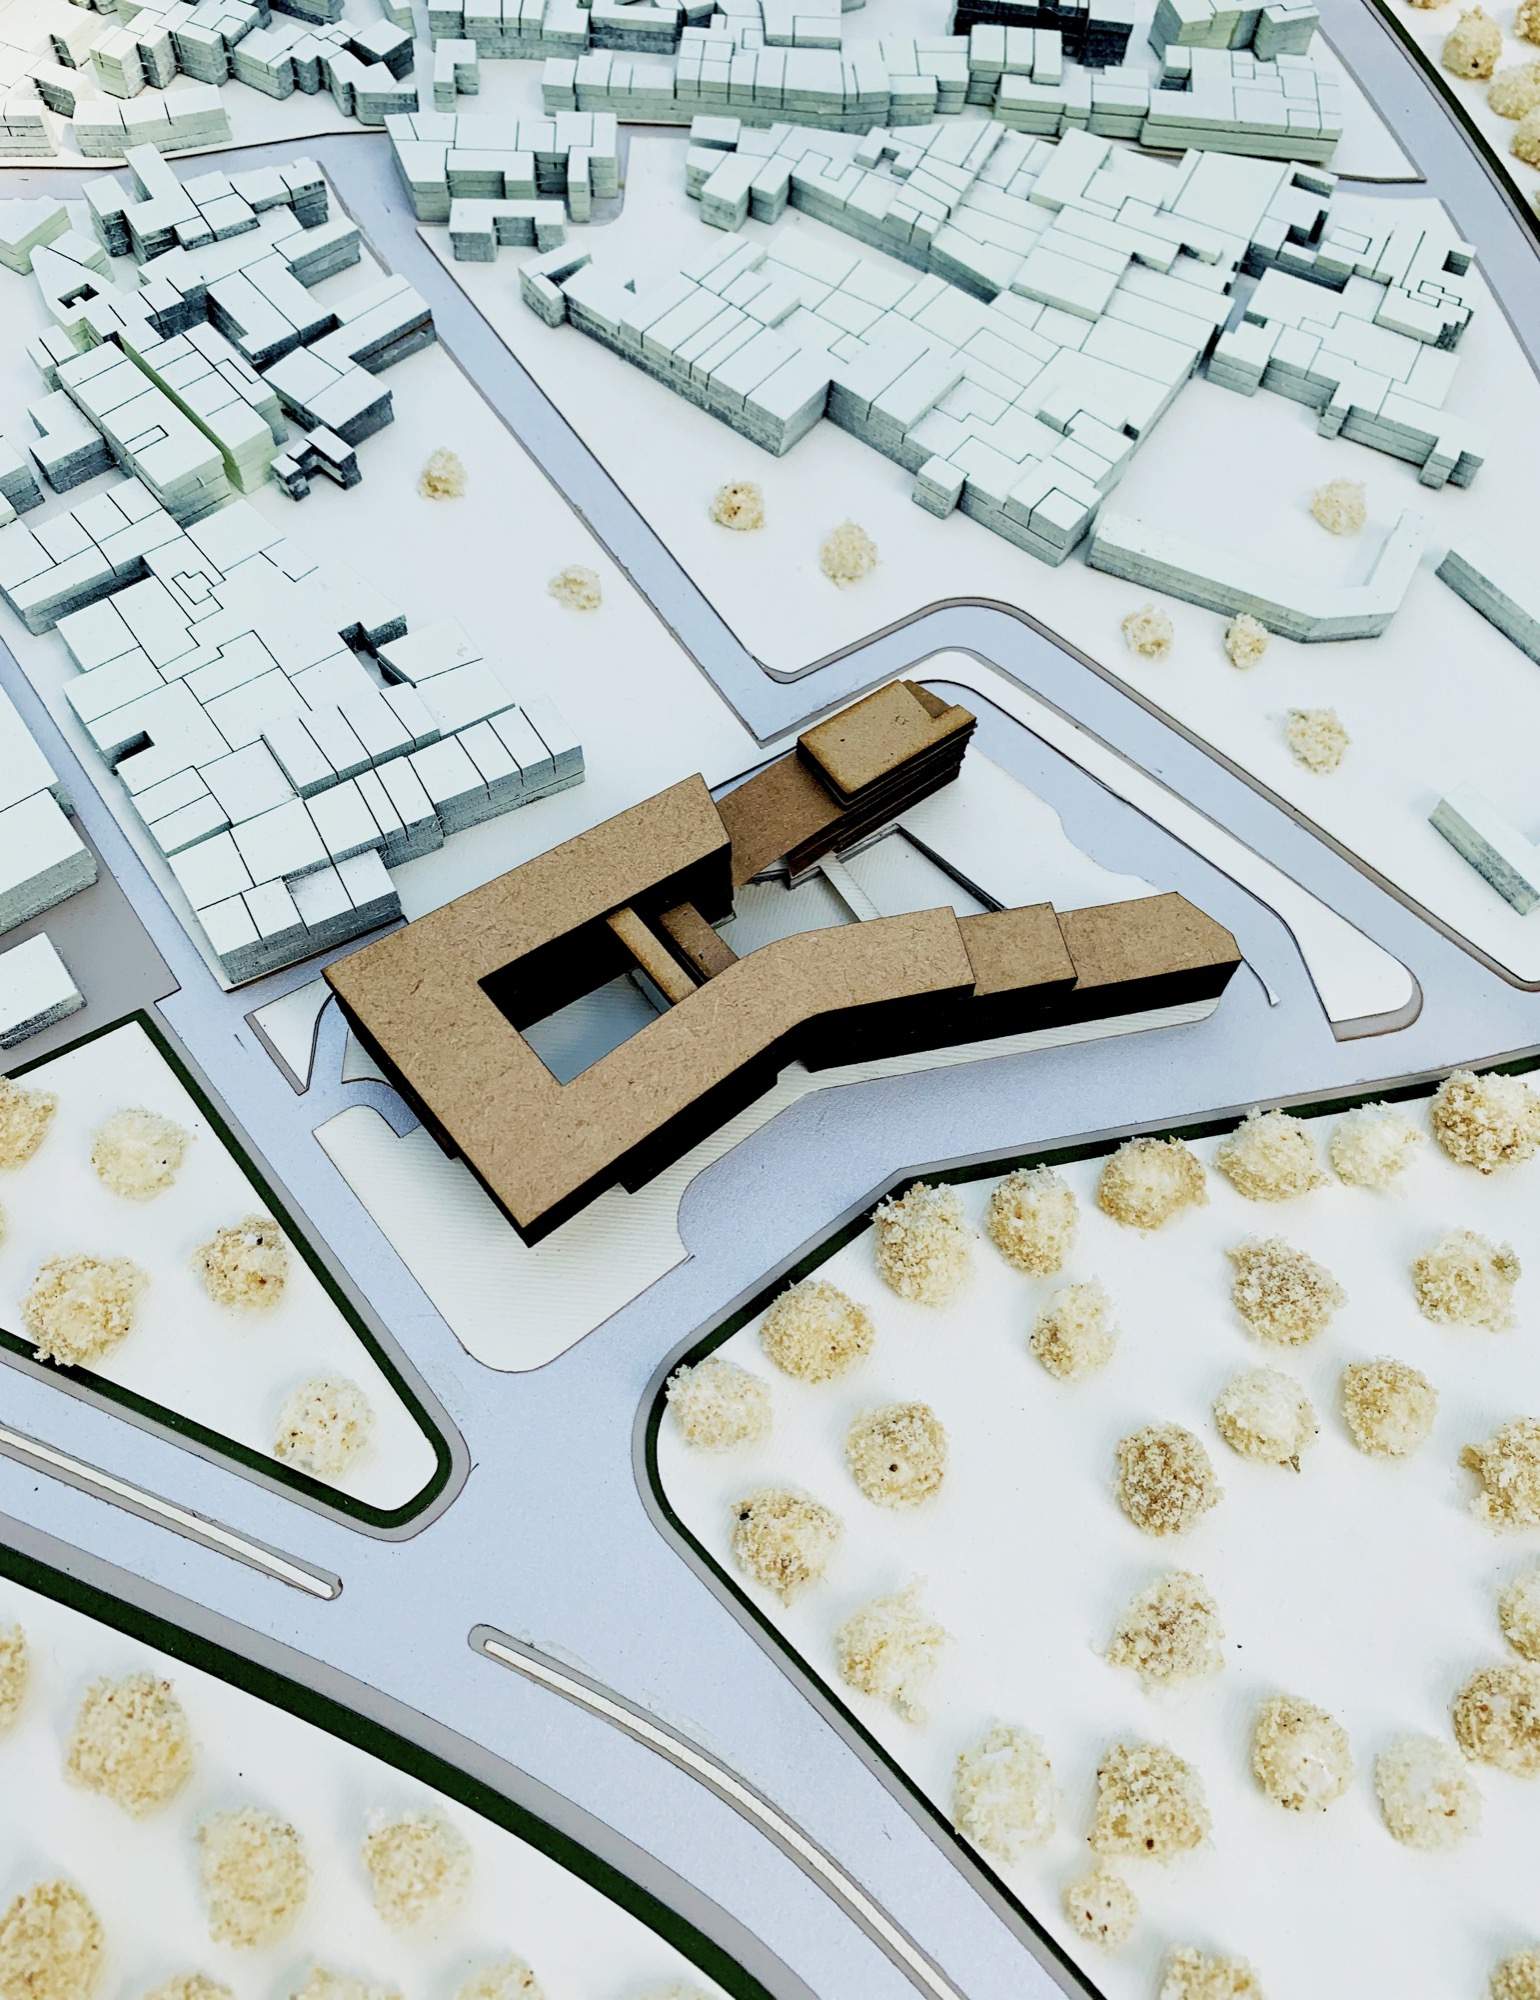 B.Arch Thesis: National Museum of Architecture, New Delhi, by Niranjan Kaur 1